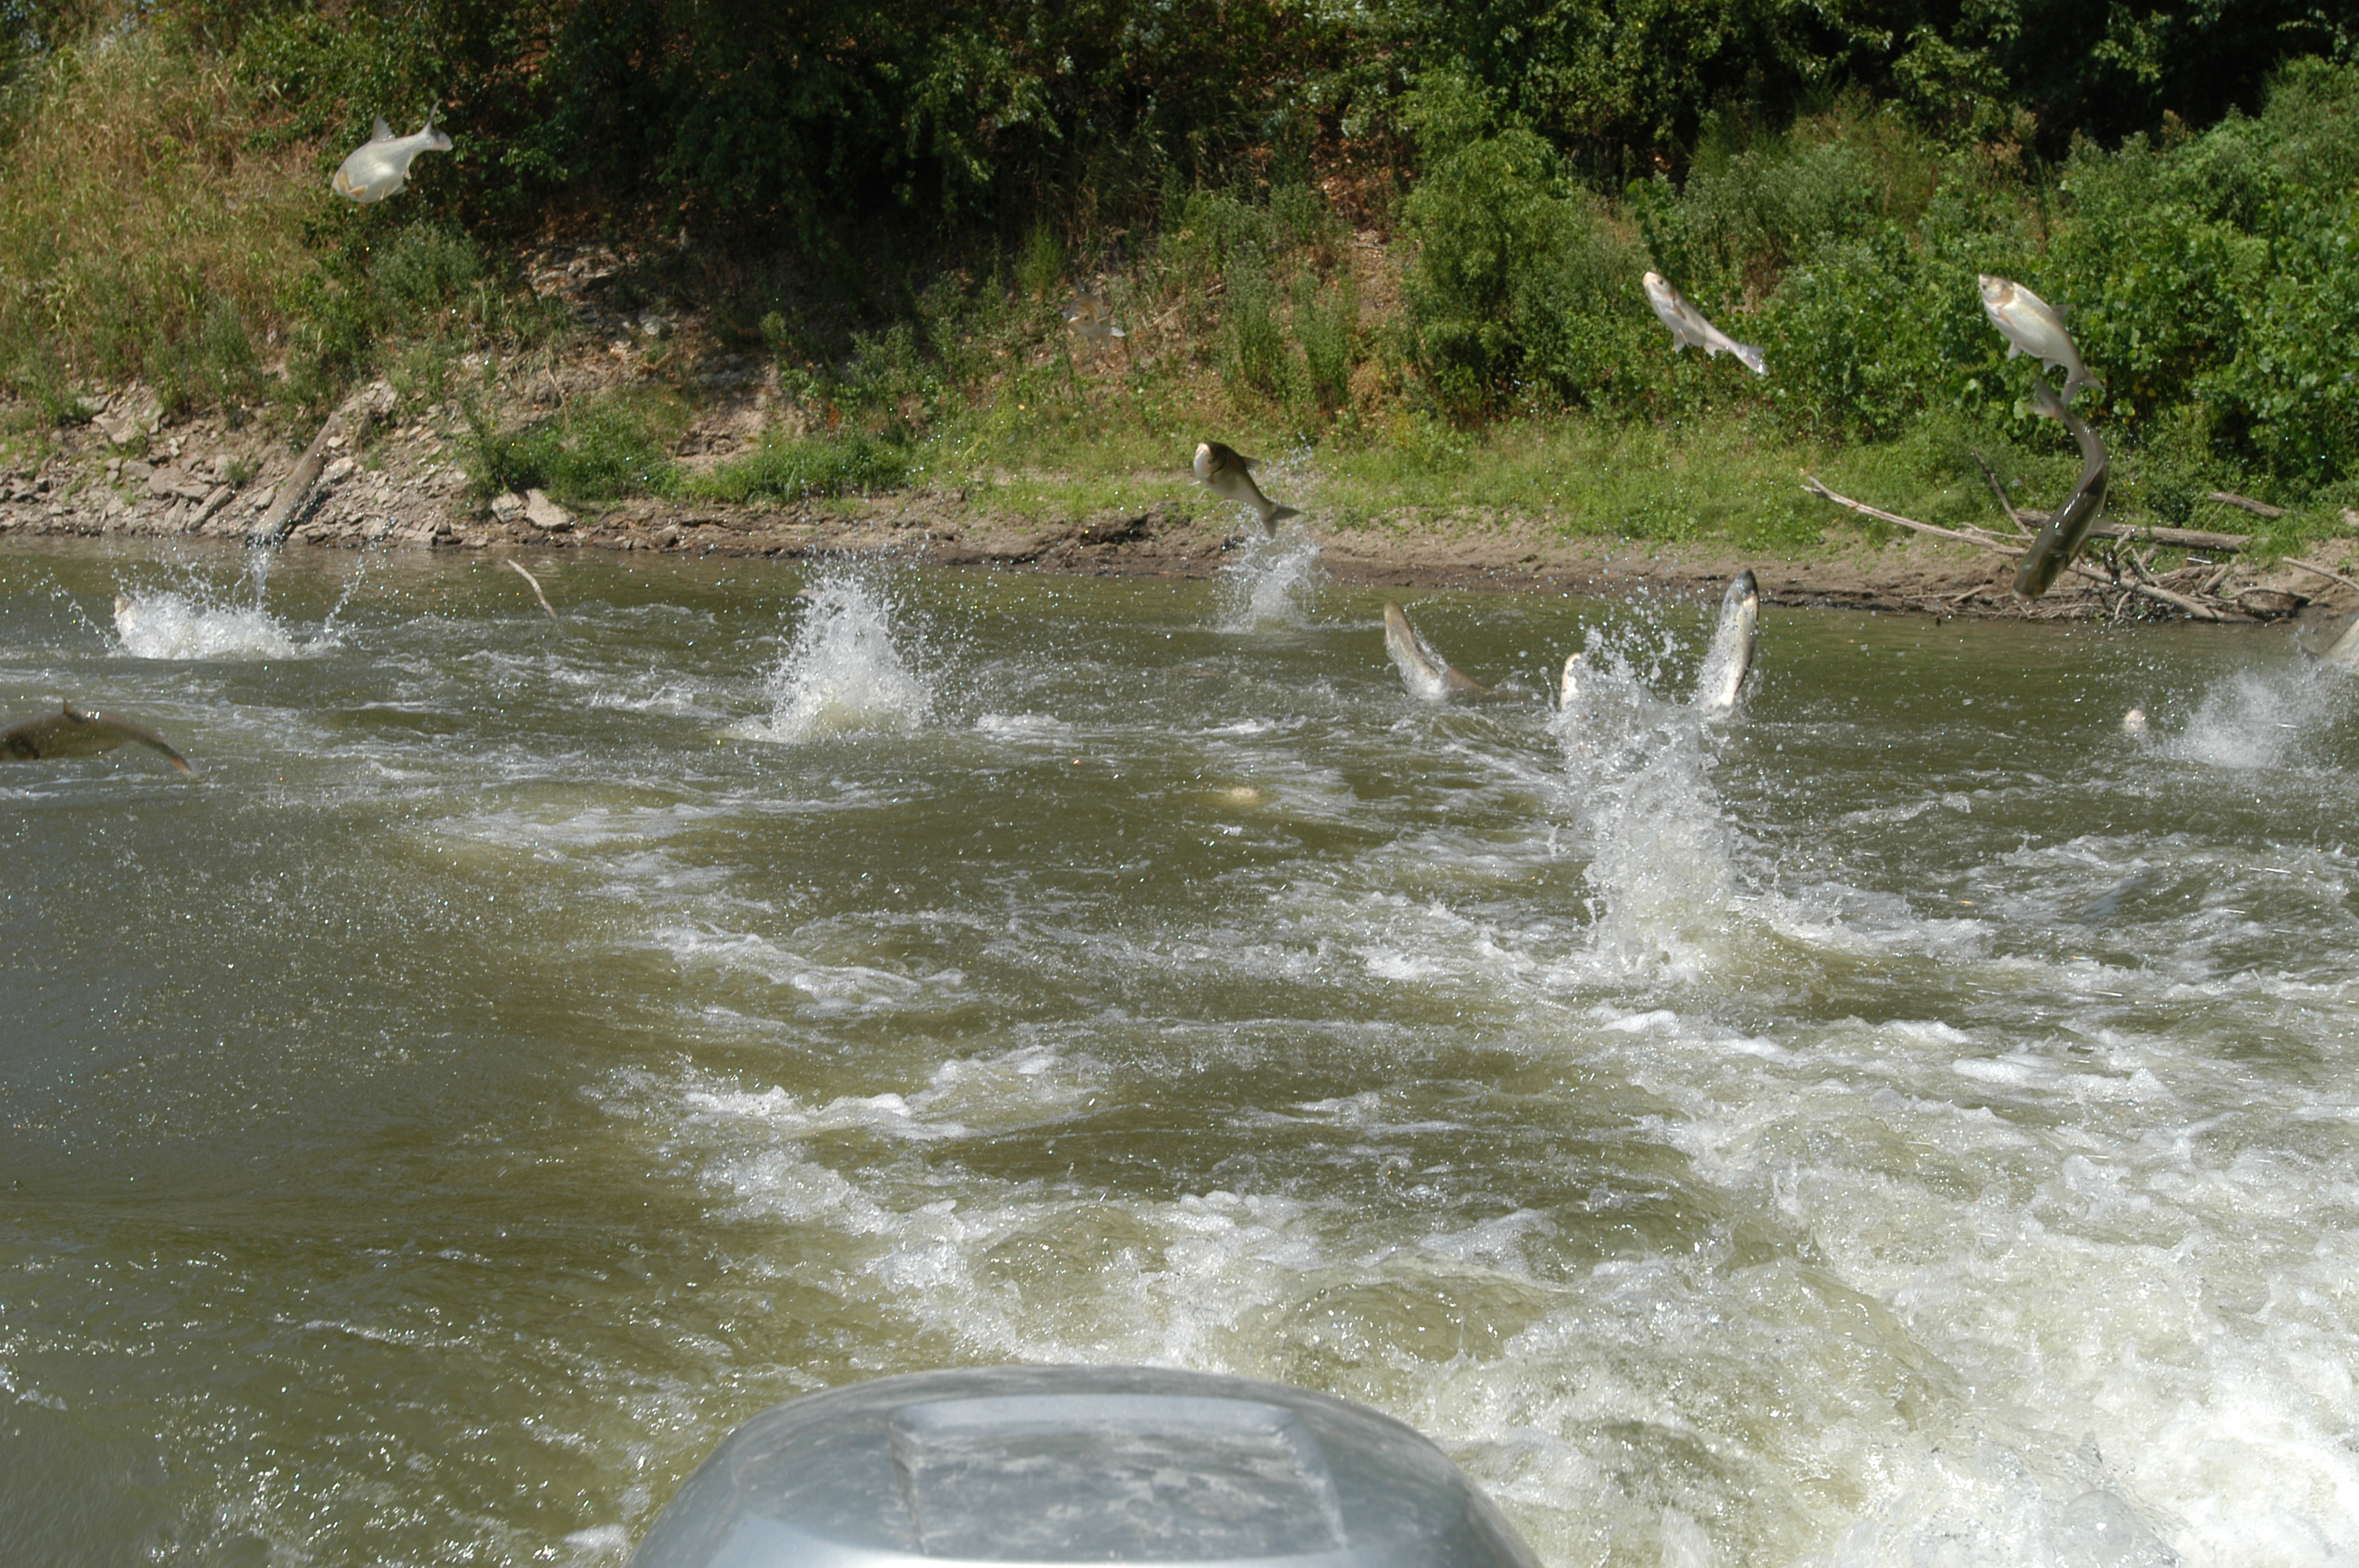 This image – not taken in Minnesota – shows how invasive Silver ('Asian') carp jump out of the river when startled.